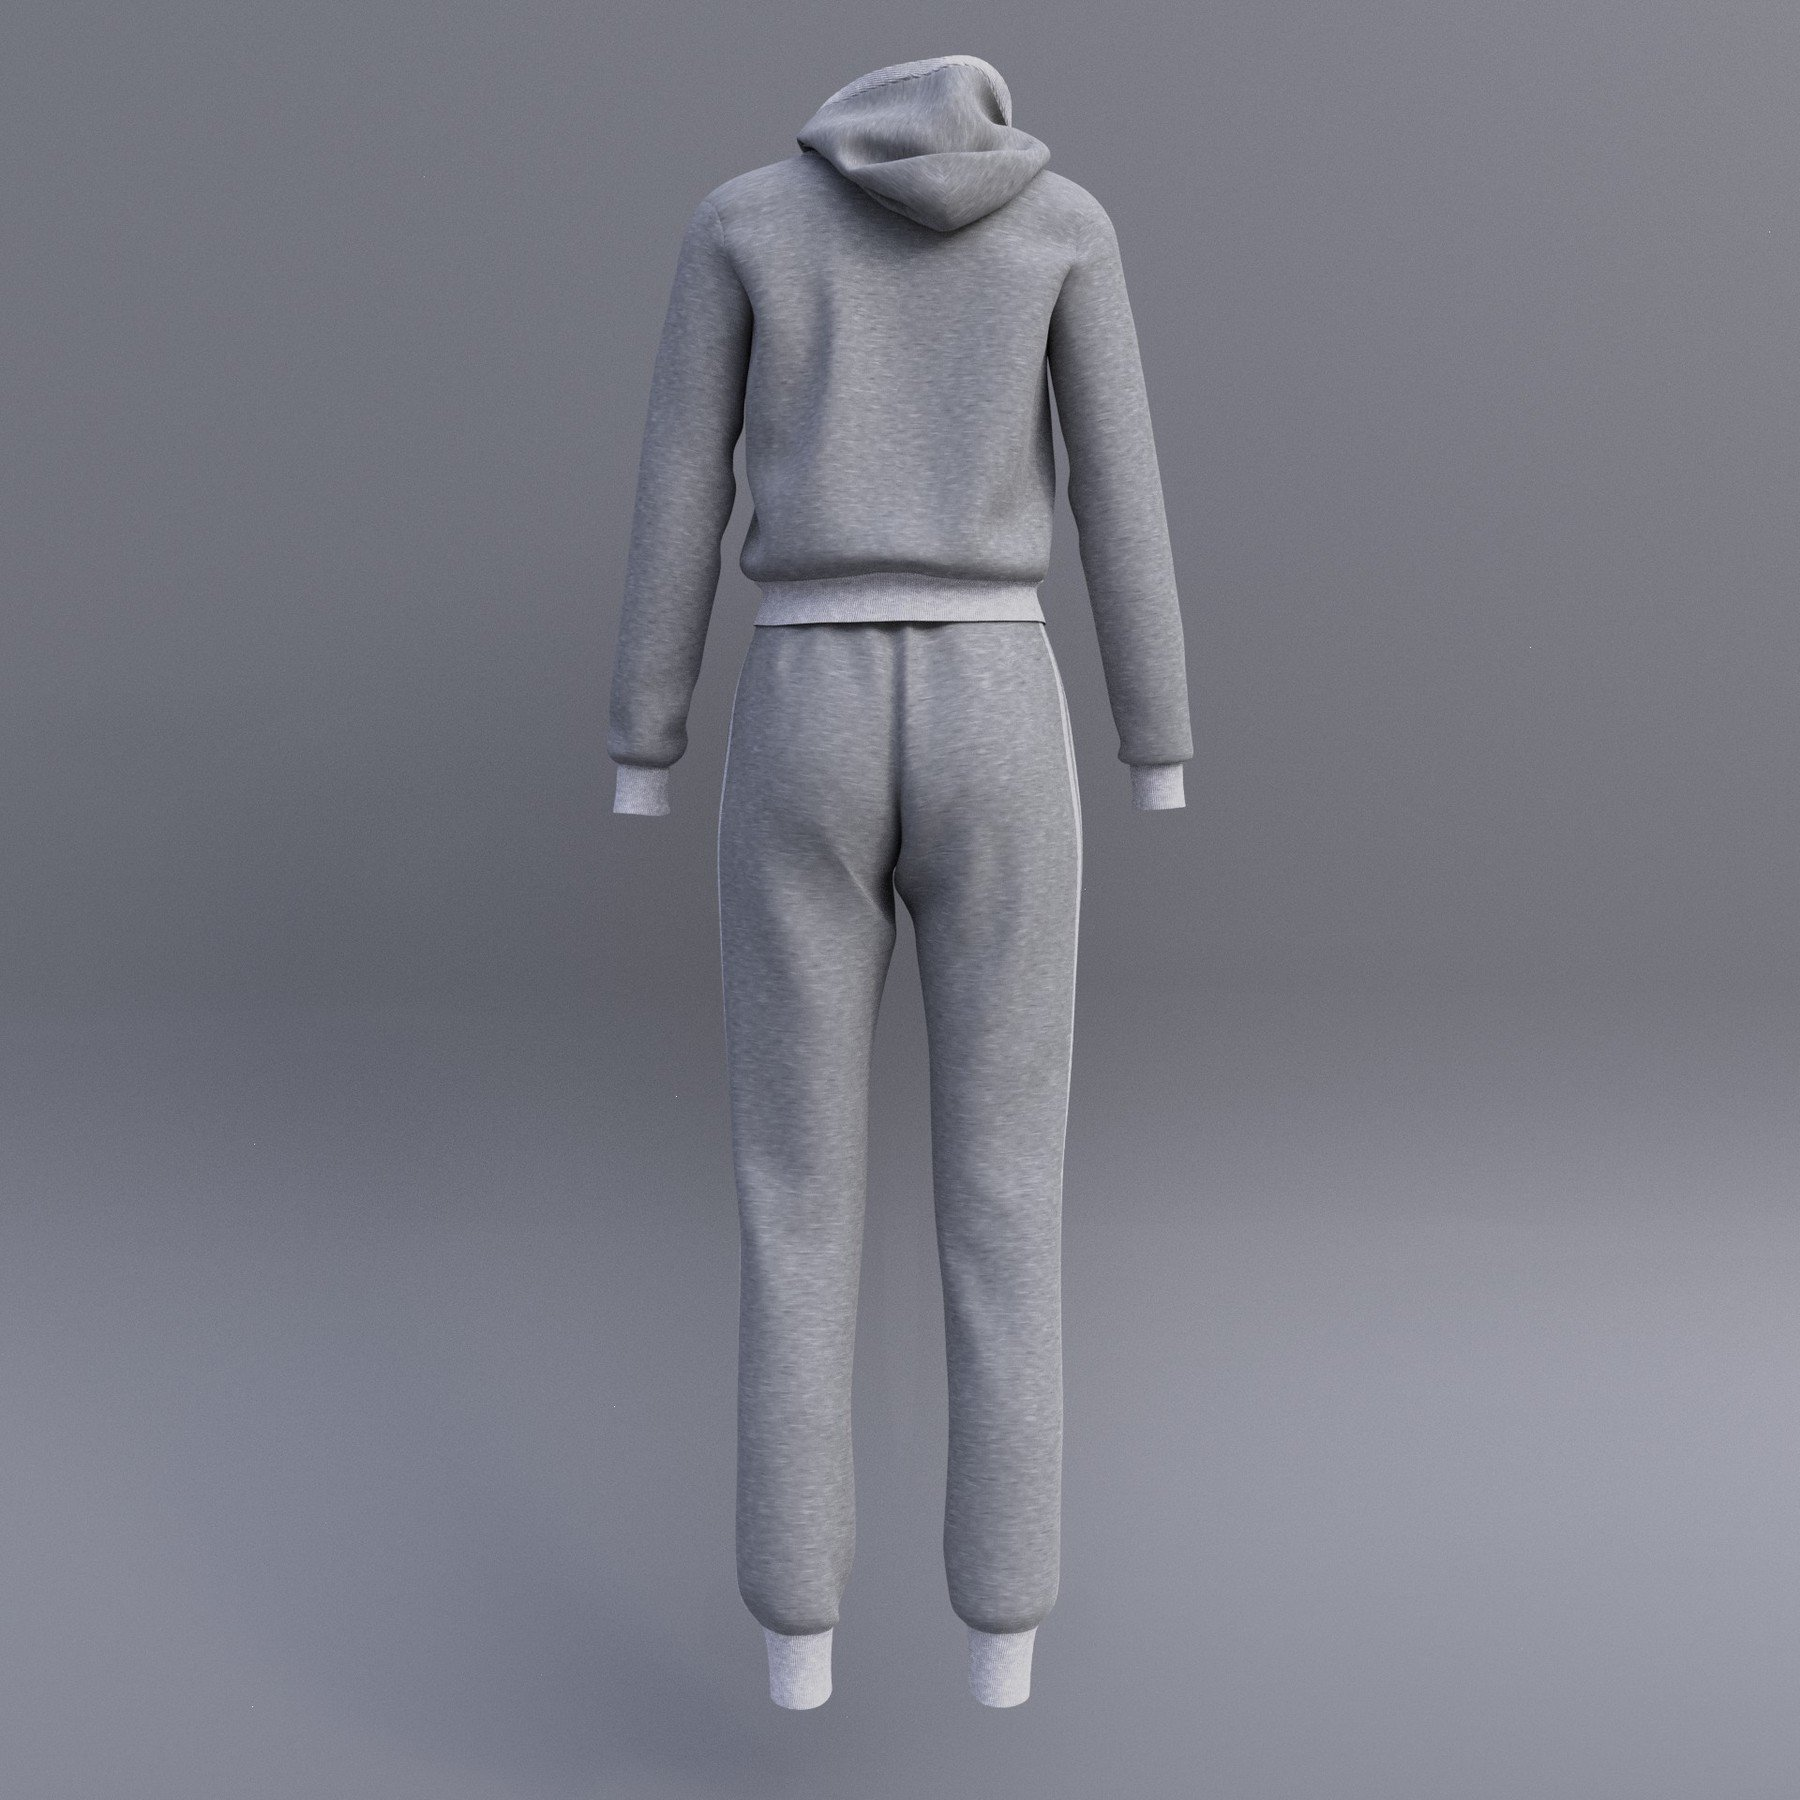 product image 12